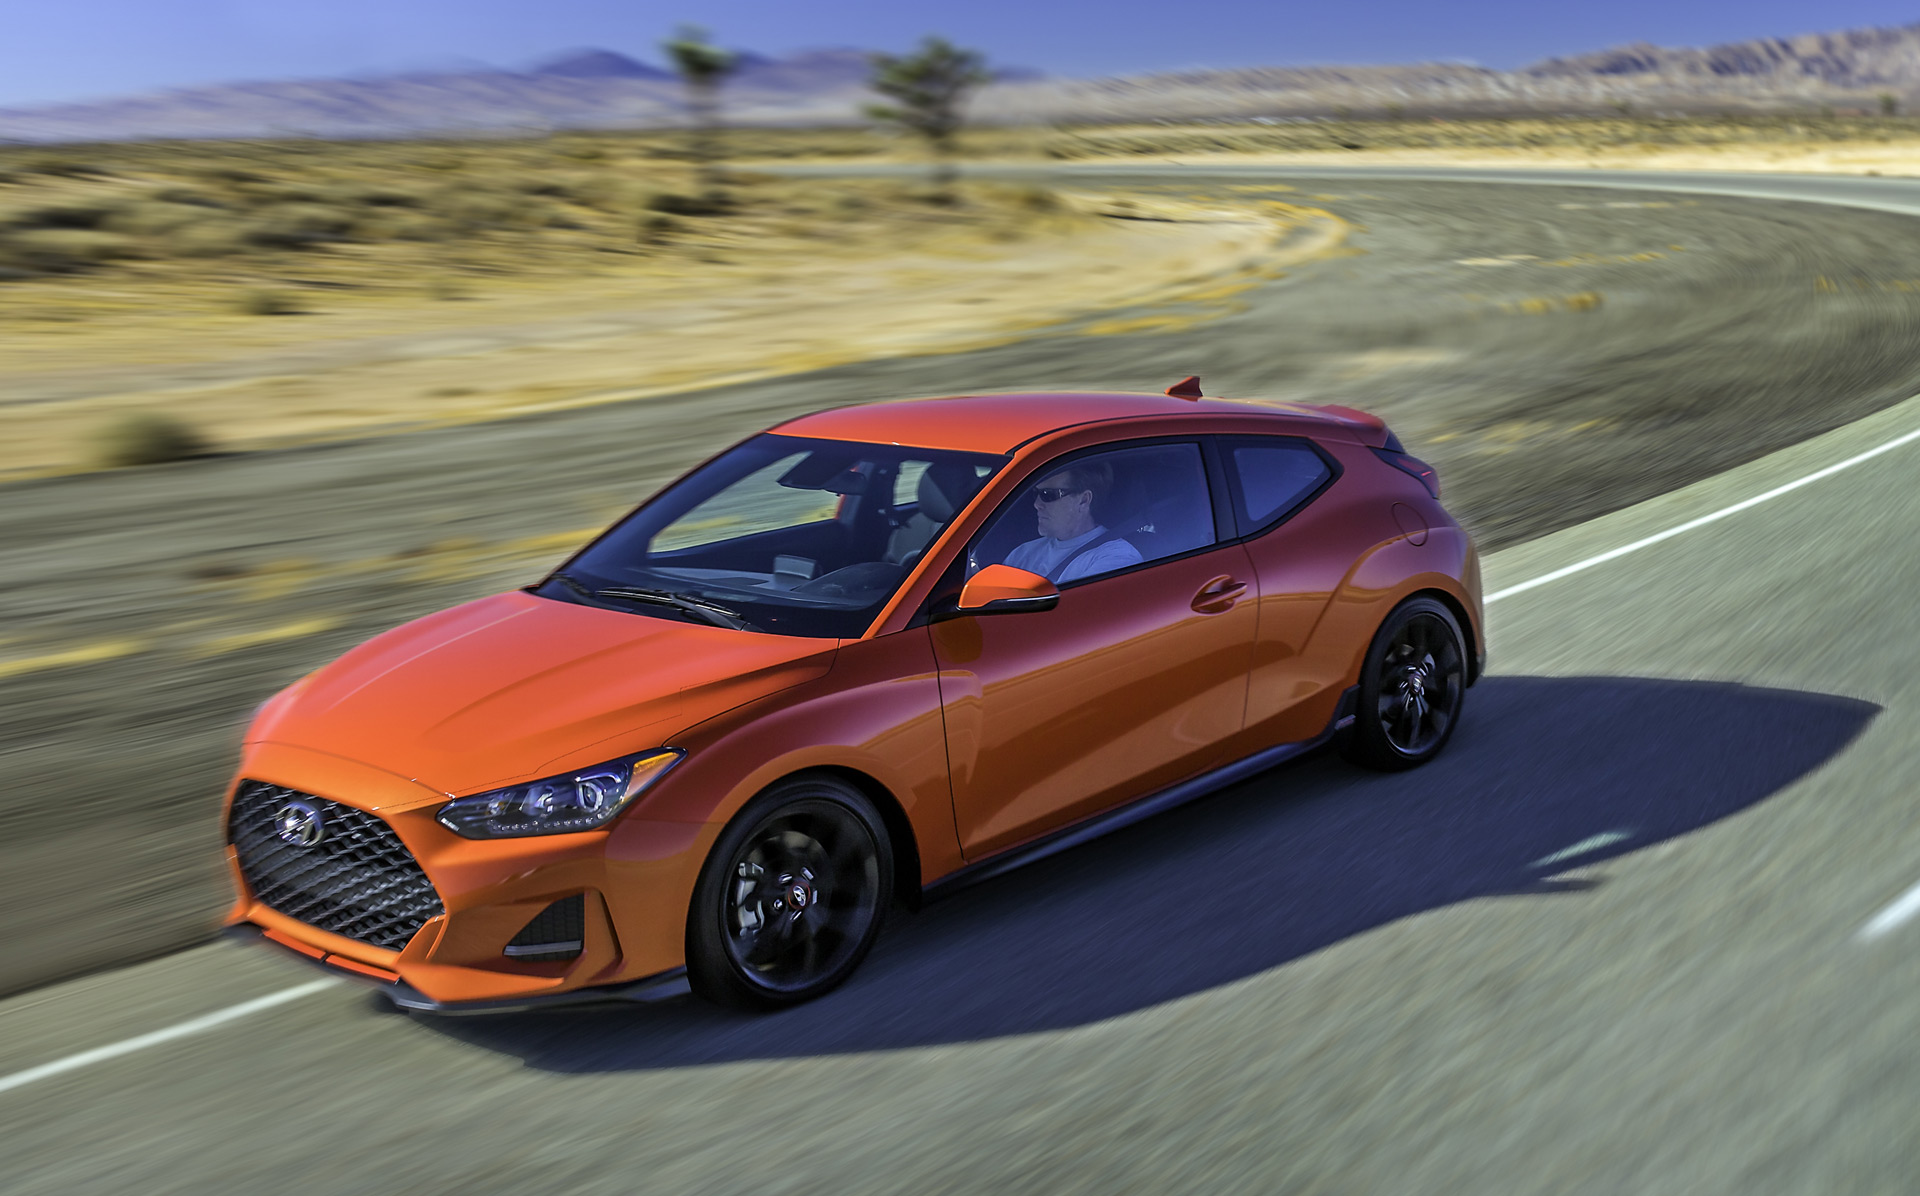 2019 Hyundai Veloster Review, Ratings, Specs, Prices, and